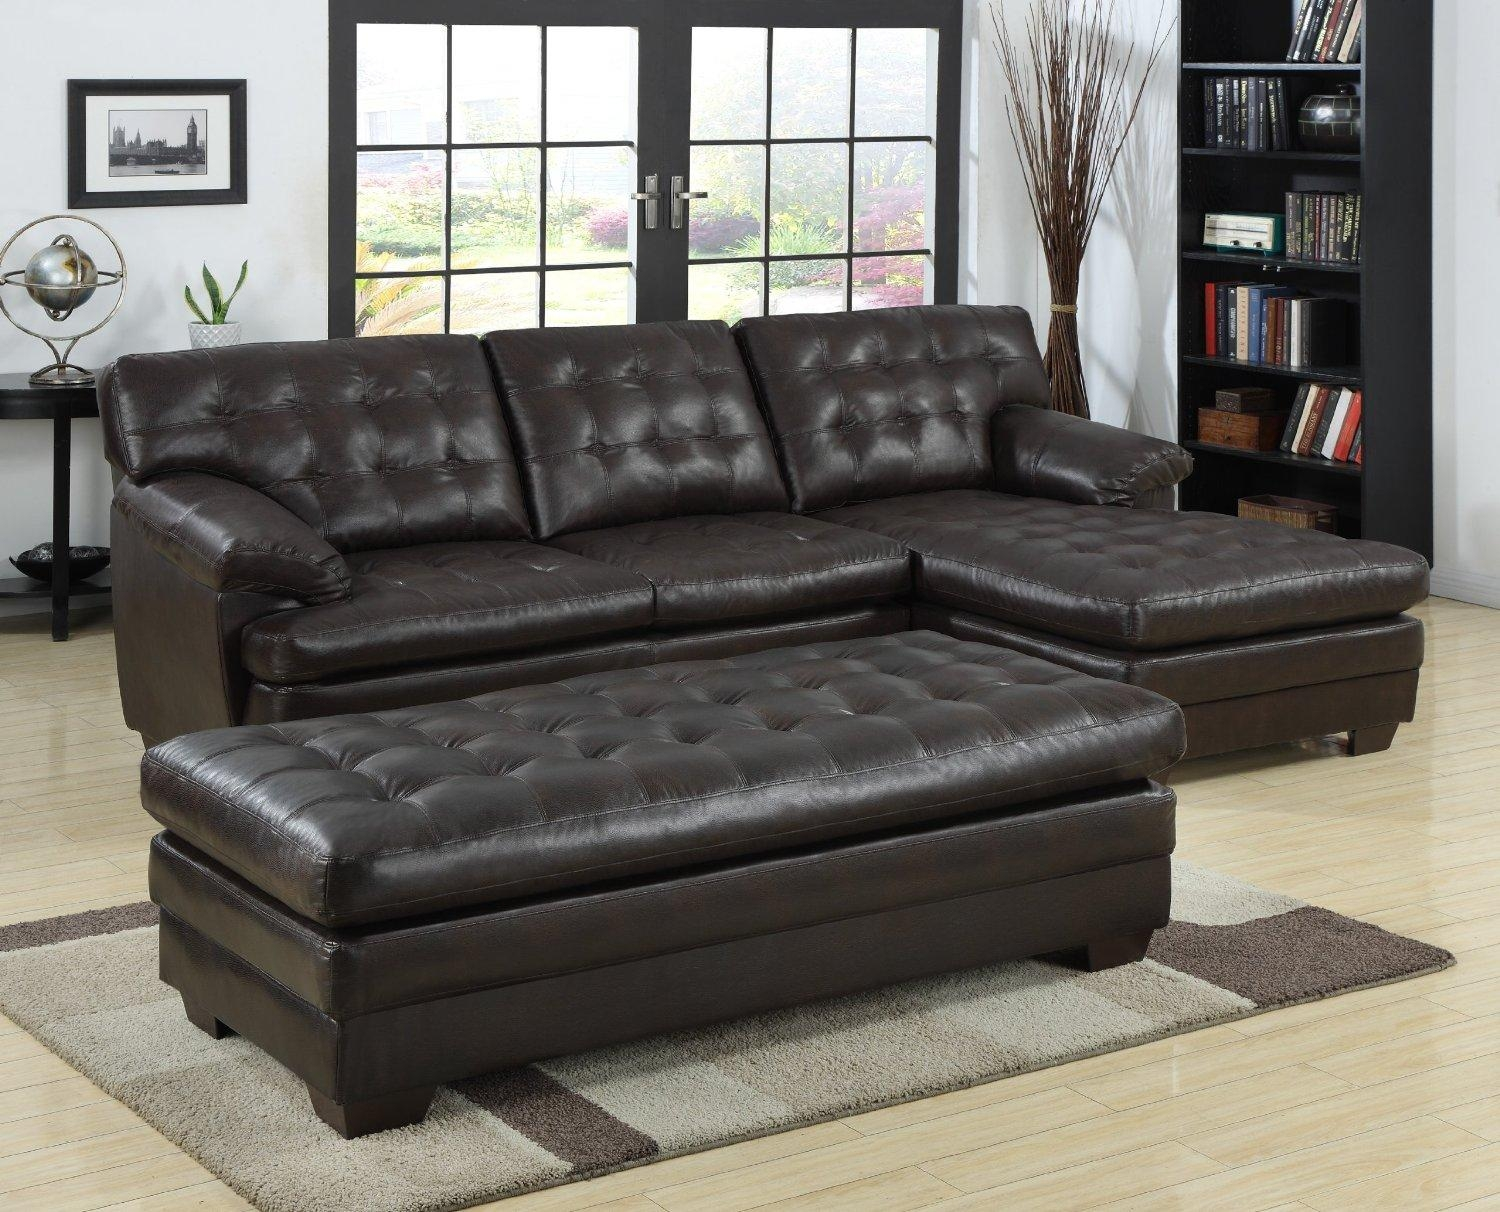 Black Tufted Leather Sectional Sofa With Chaise And Bench Seat Throughout Tufted Sectional Sofa Chaise (View 3 of 20)